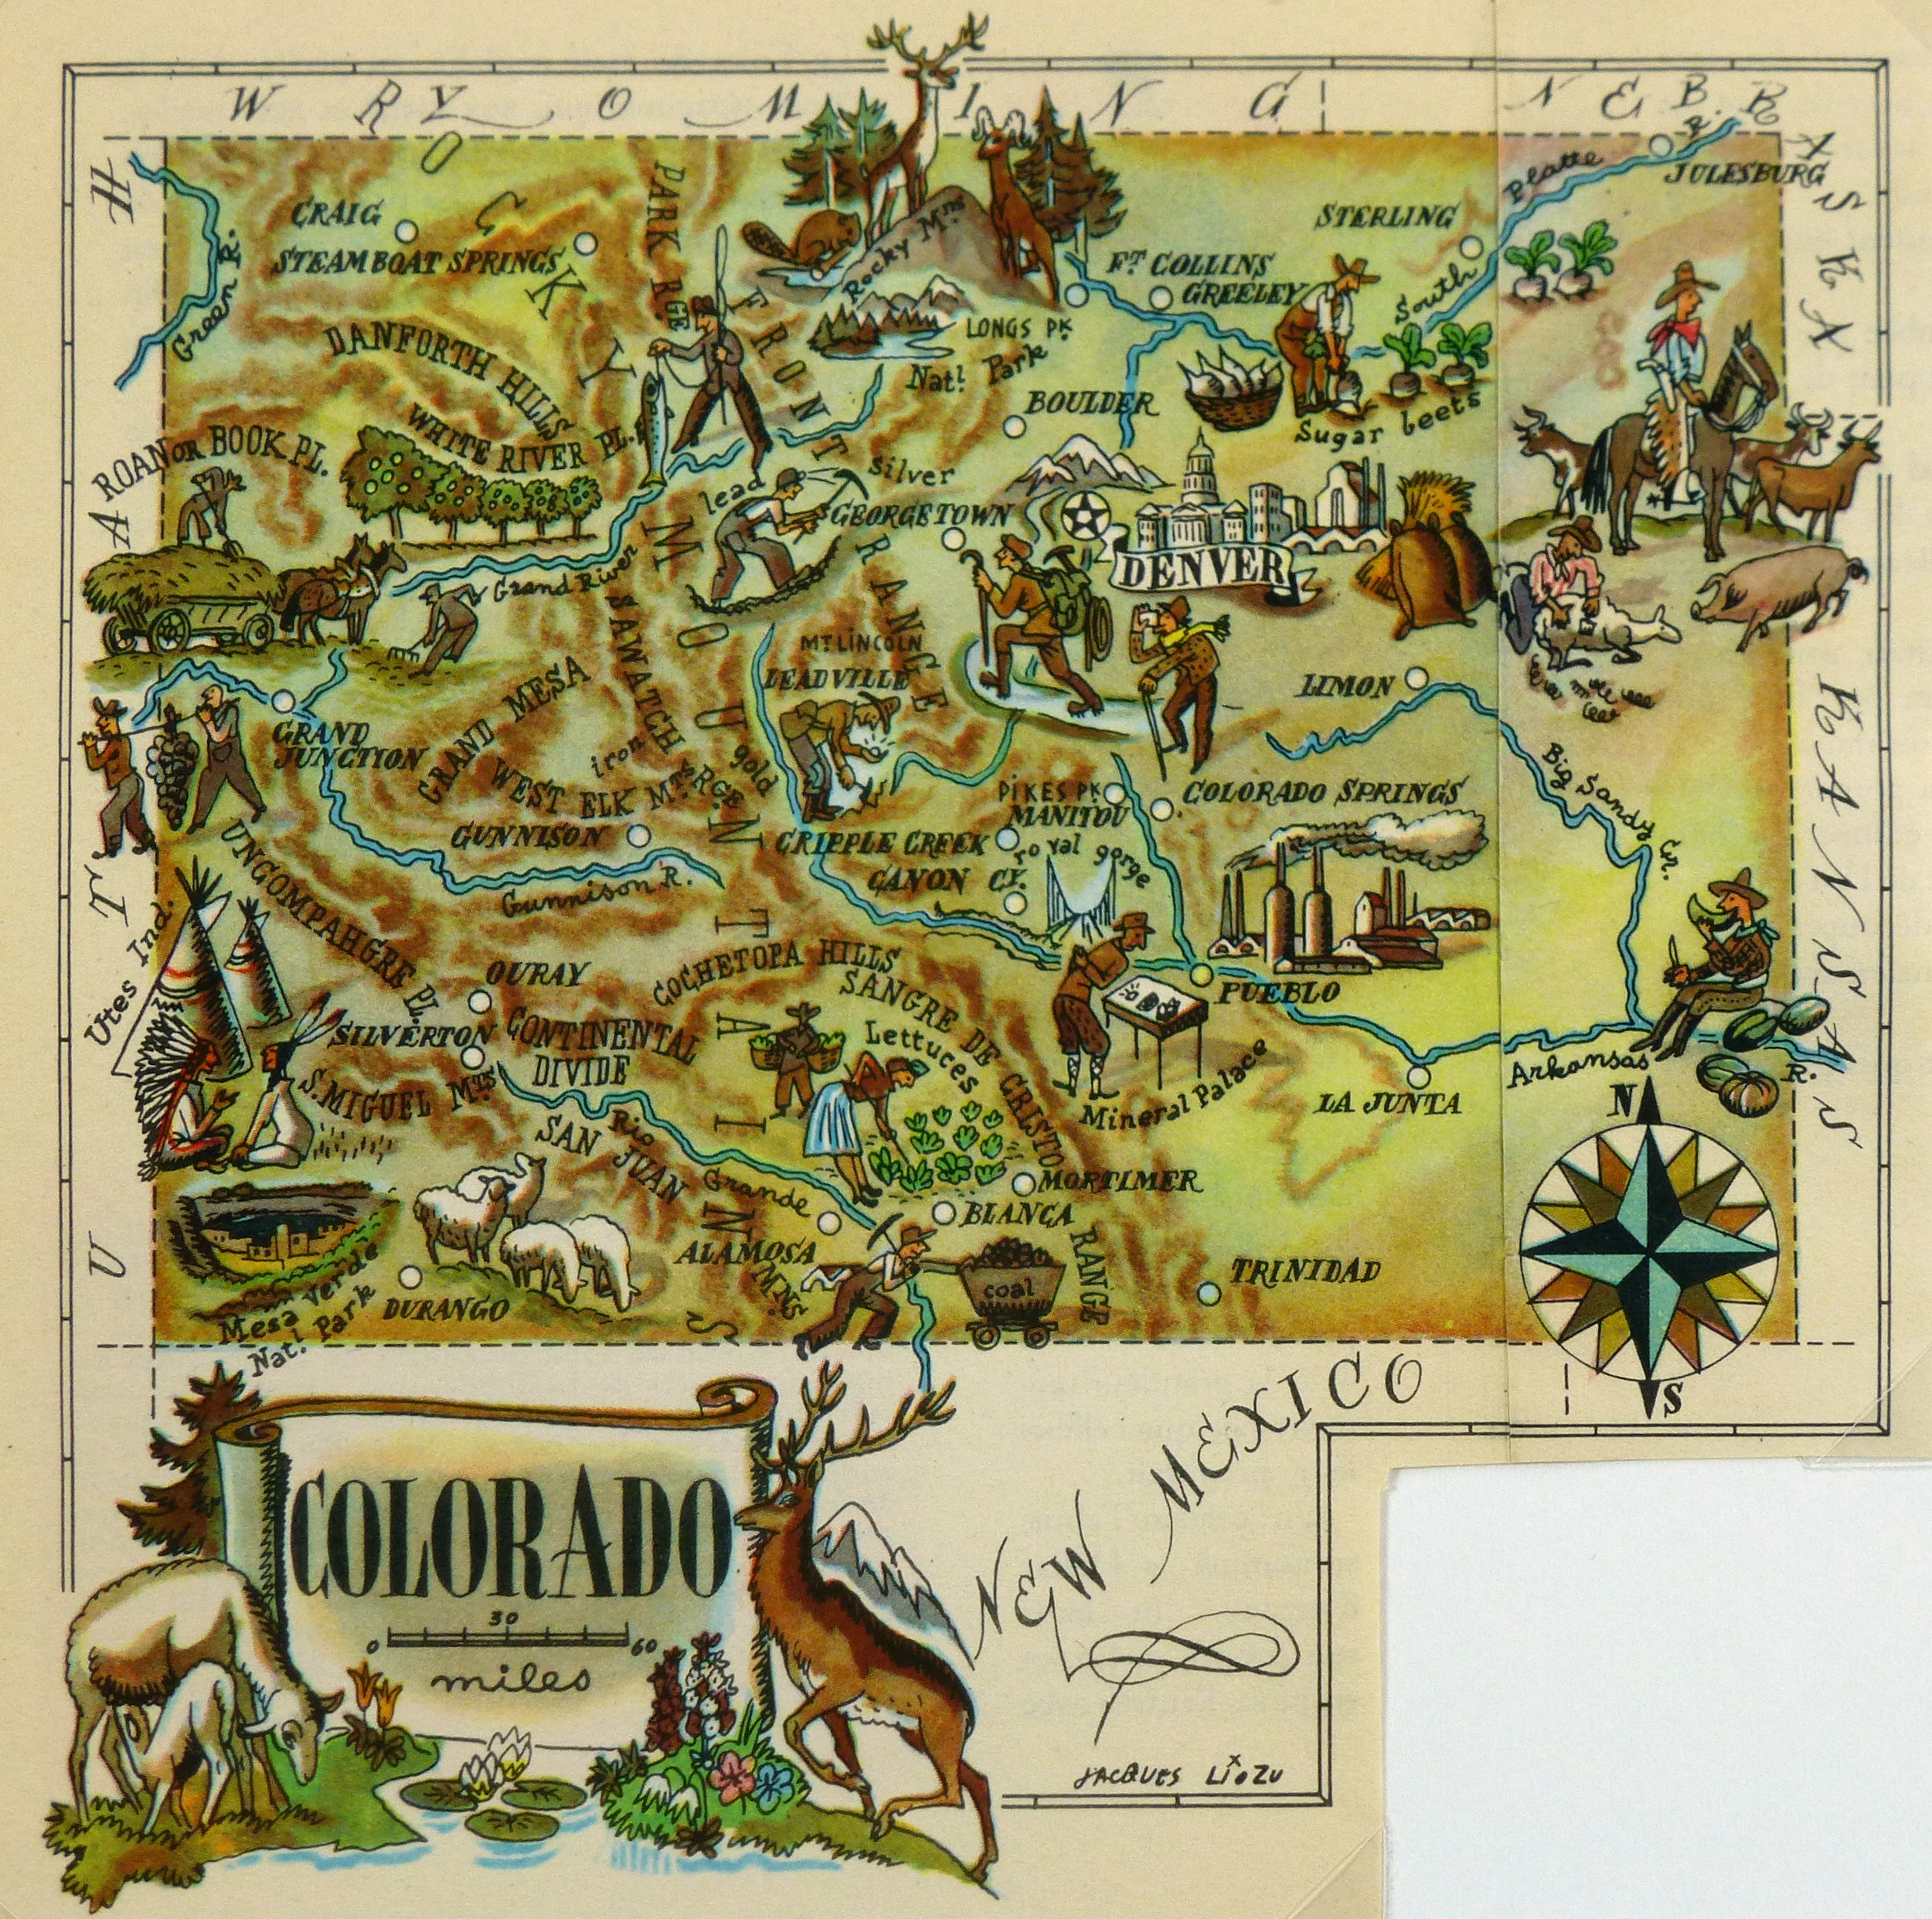 Colorado Usa Map: Colorado Pictorial Map, 1946